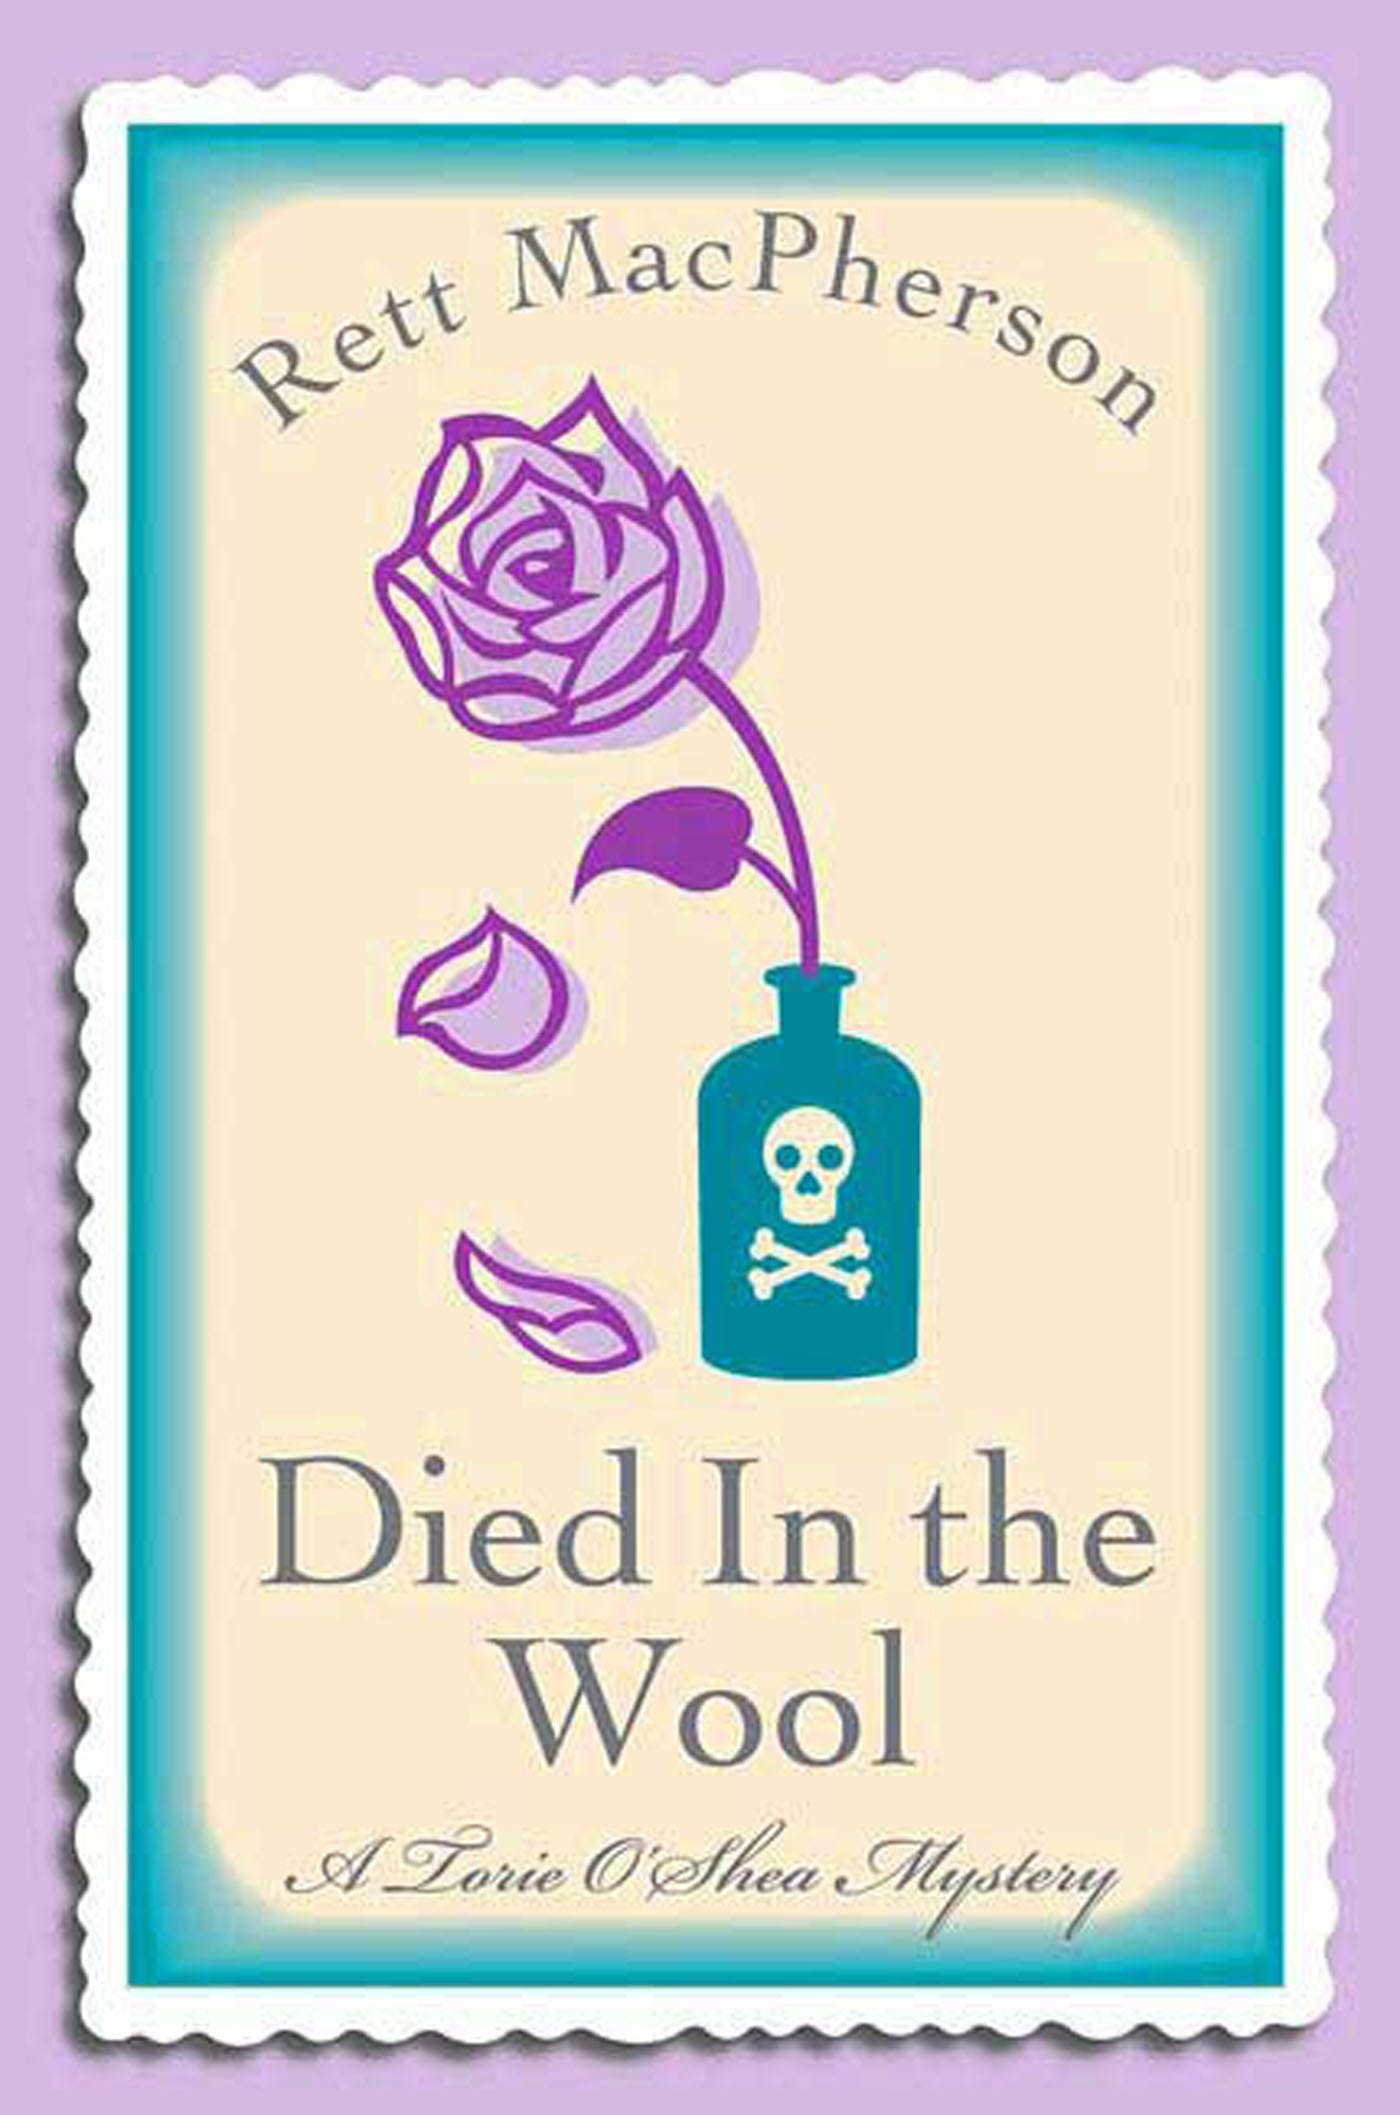 Image of Died in the Wool